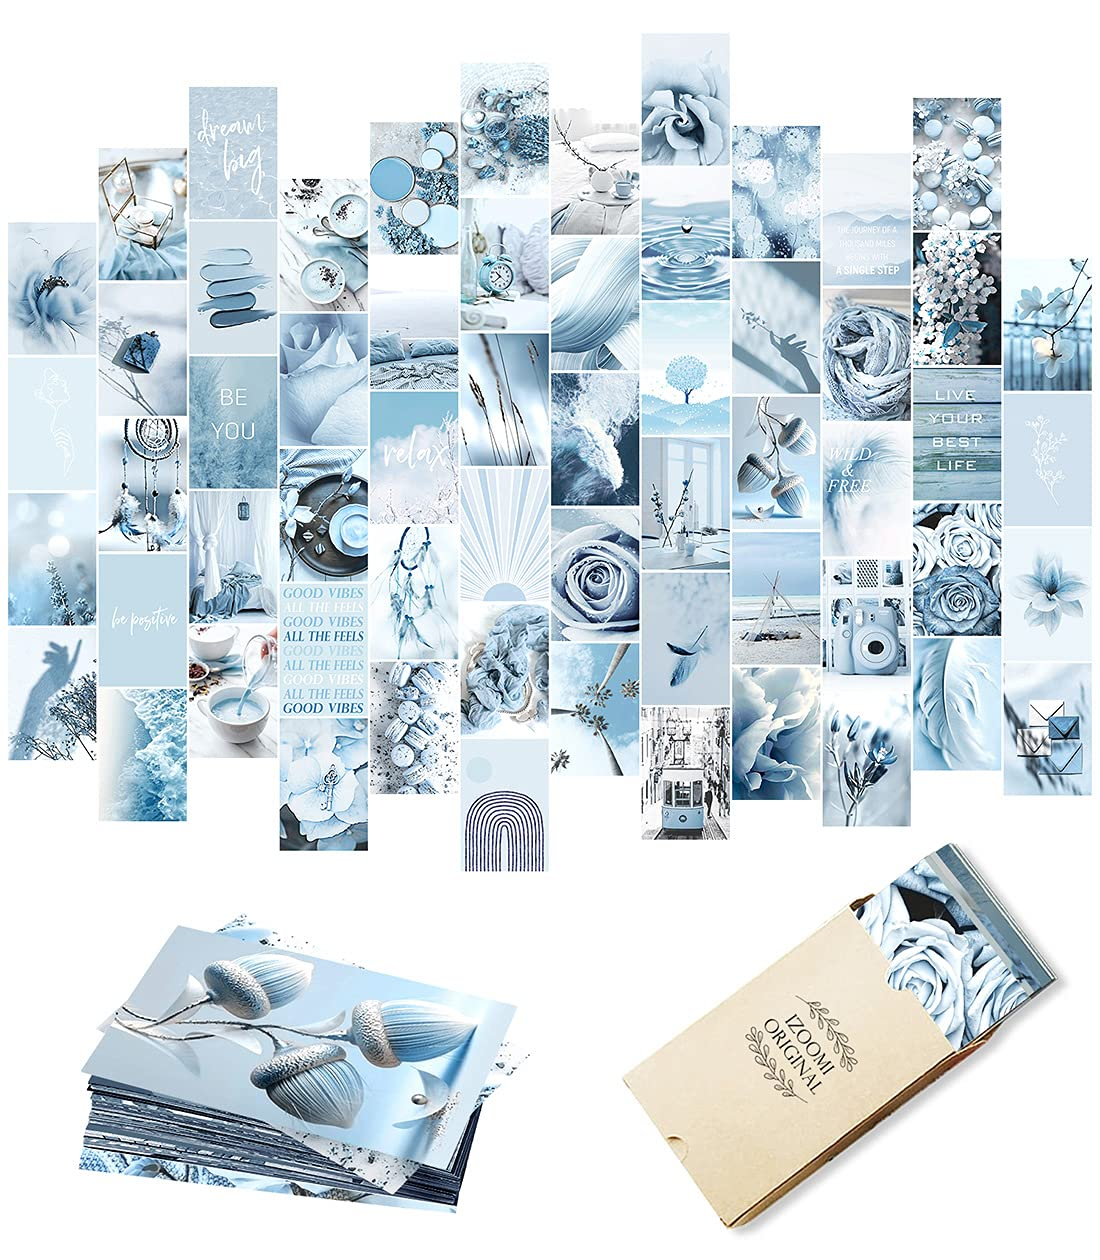 Blue Wall Collage Kit Aesthetic Pictures, Aesthetic Room Decor, Bedroom Decor for Teen Girls, Wall Collage Kit, Photo Wall, Aesthetic Posters, Collage Kit, Blue Wall Decor (60 PCS, 4x6 inch)